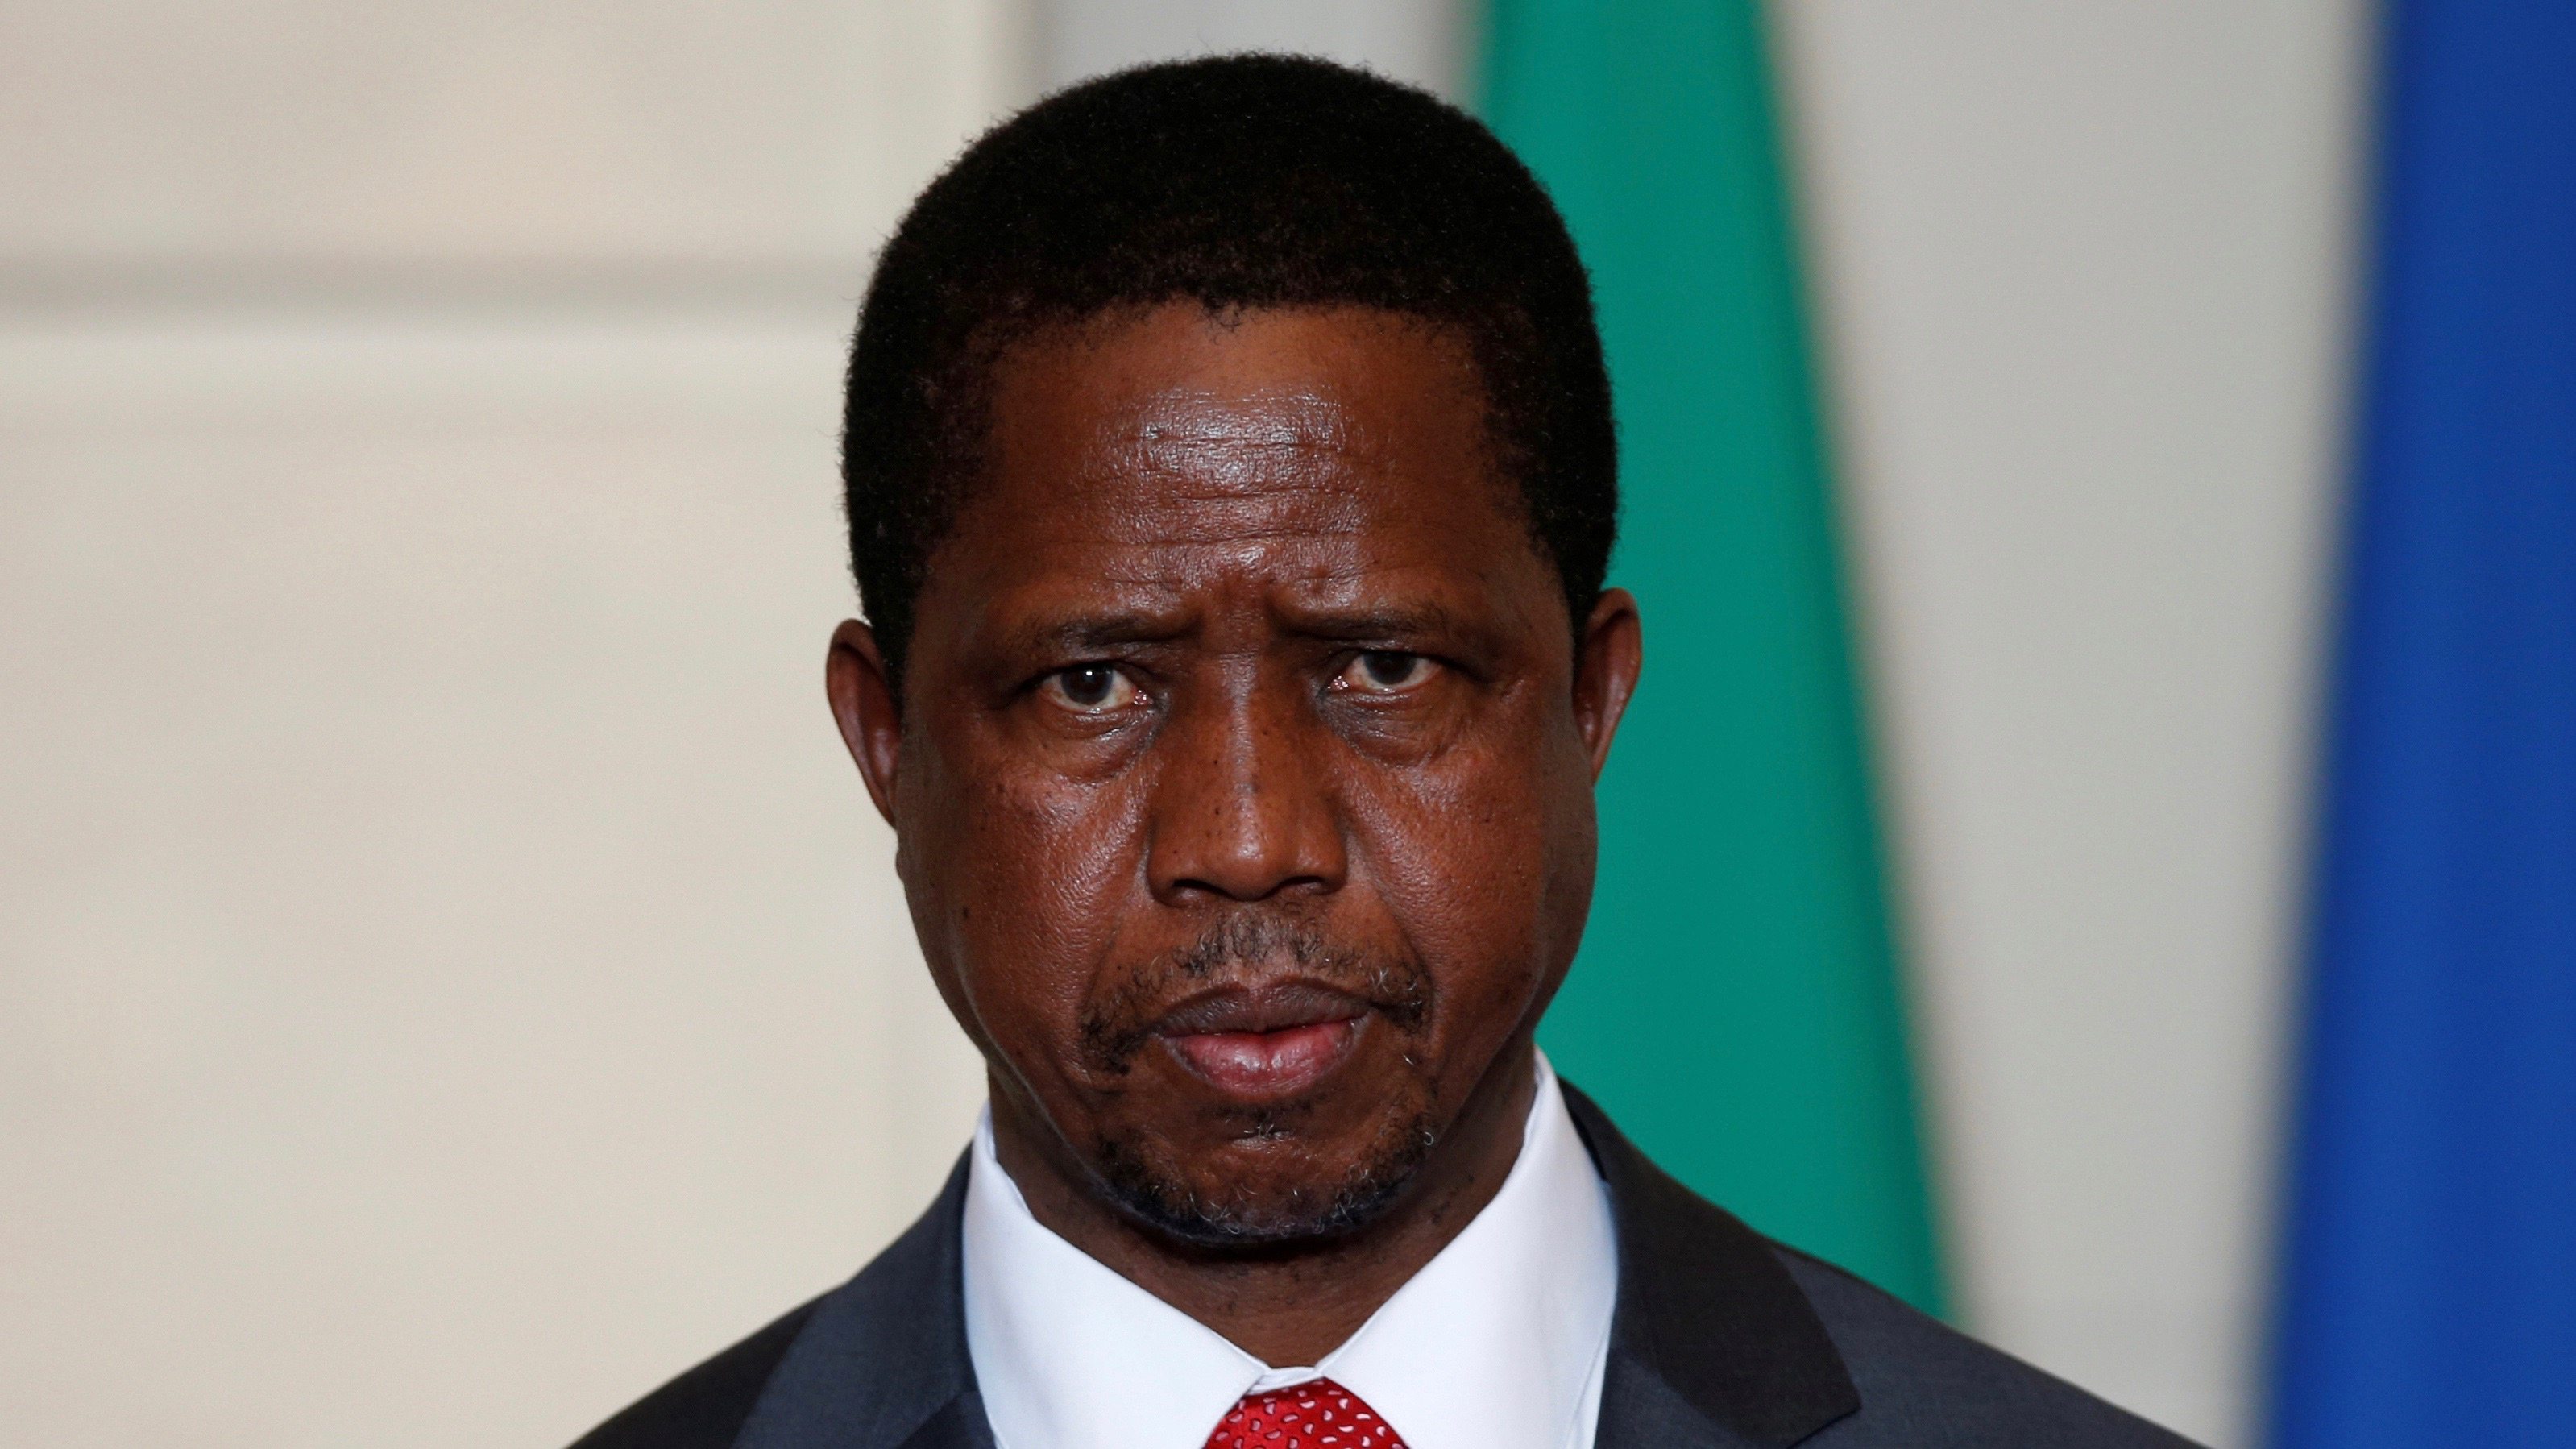 Zambia's President Edgar Lungu attends a signing ceremony at the Elysee Palace in Paris, France, February 8, 2016. REUTERS/Philippe Wojazer/File Photo - RTX2LQPZ